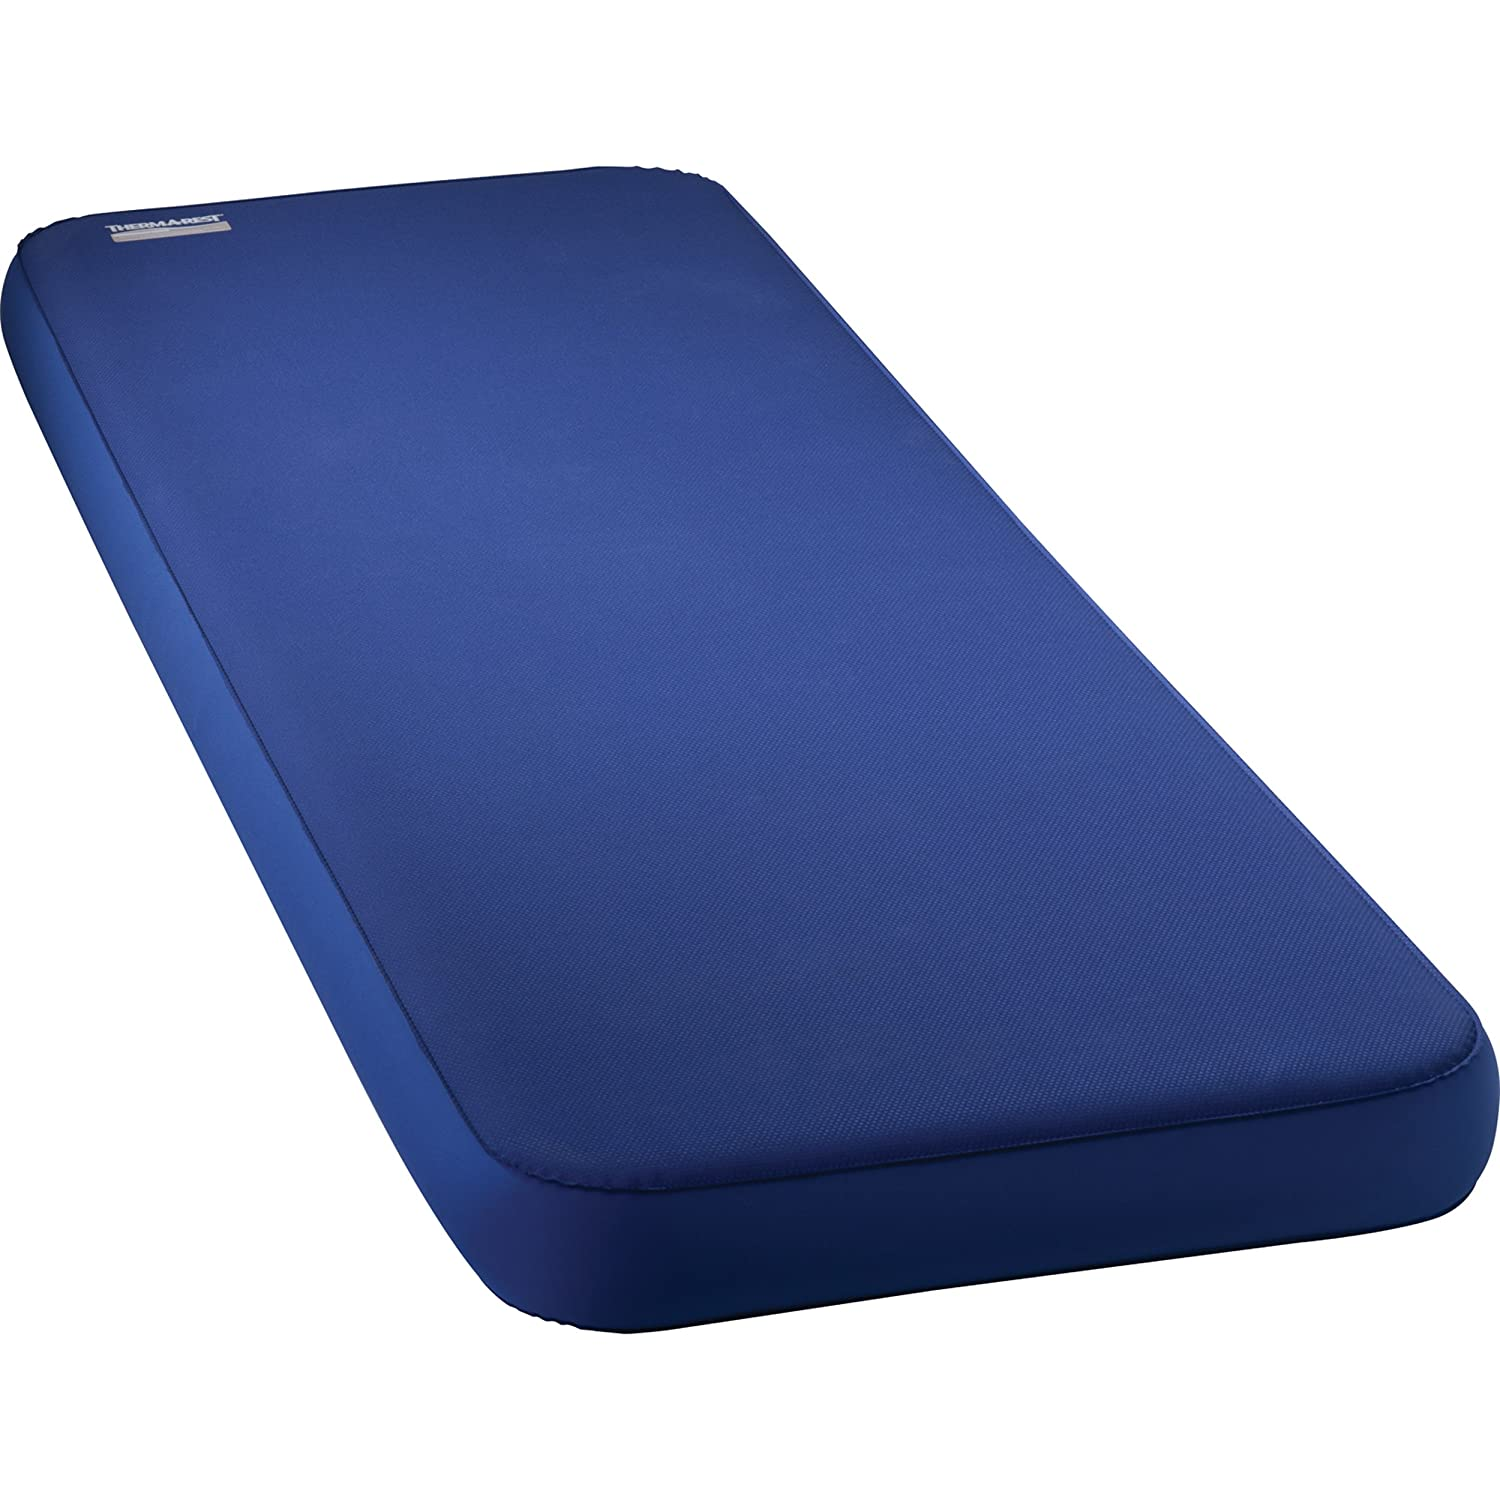 The 5 Best Air Mattresses for Children In 2021: Reviews & Buying Guide 9